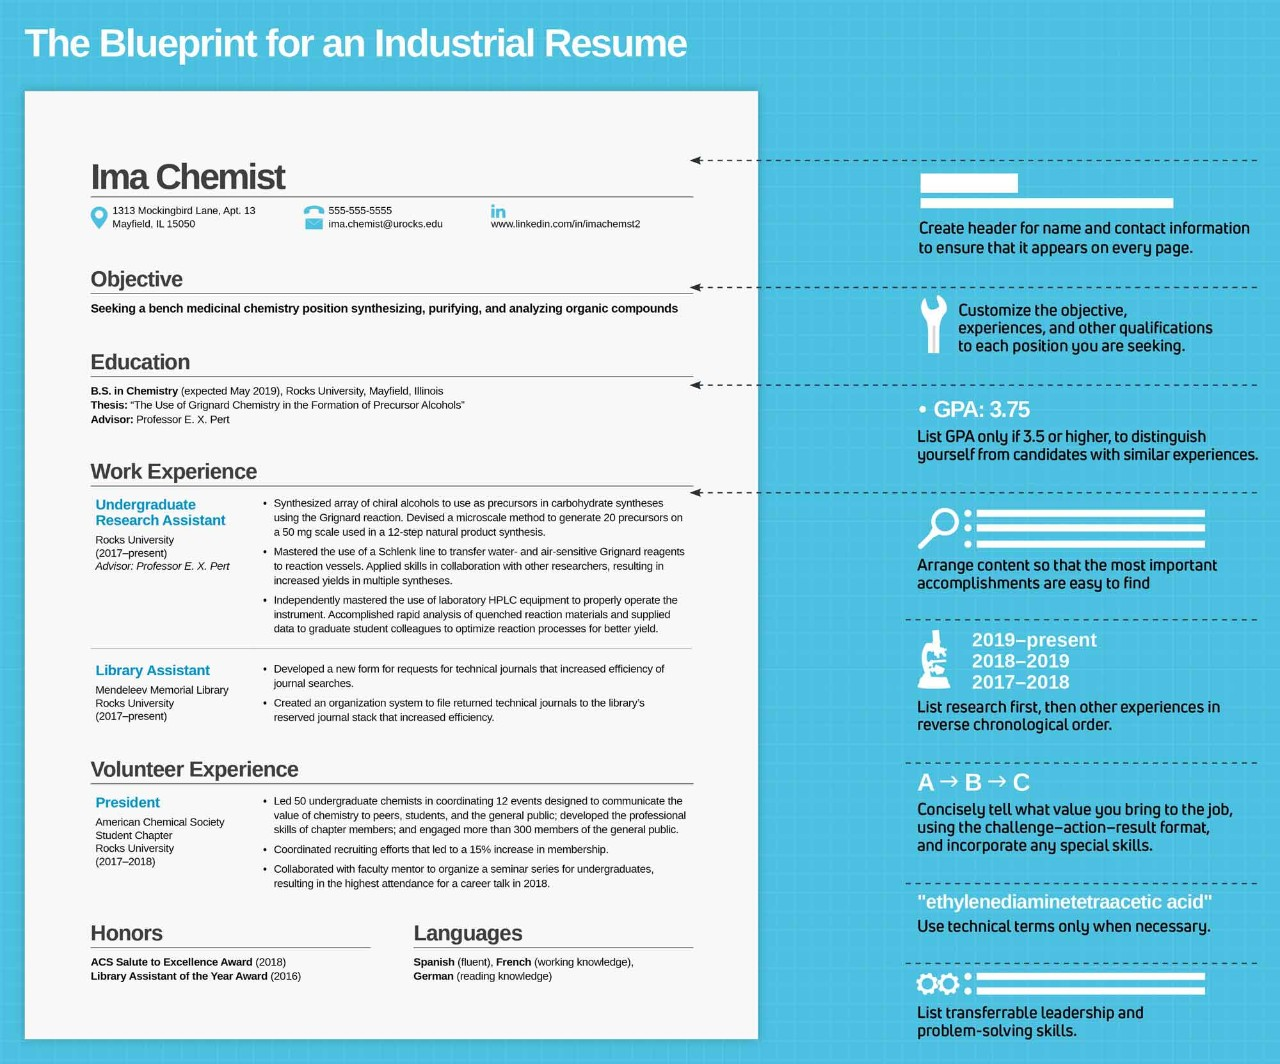 Blueprint for a Chemical Industry Resume - inChemistry